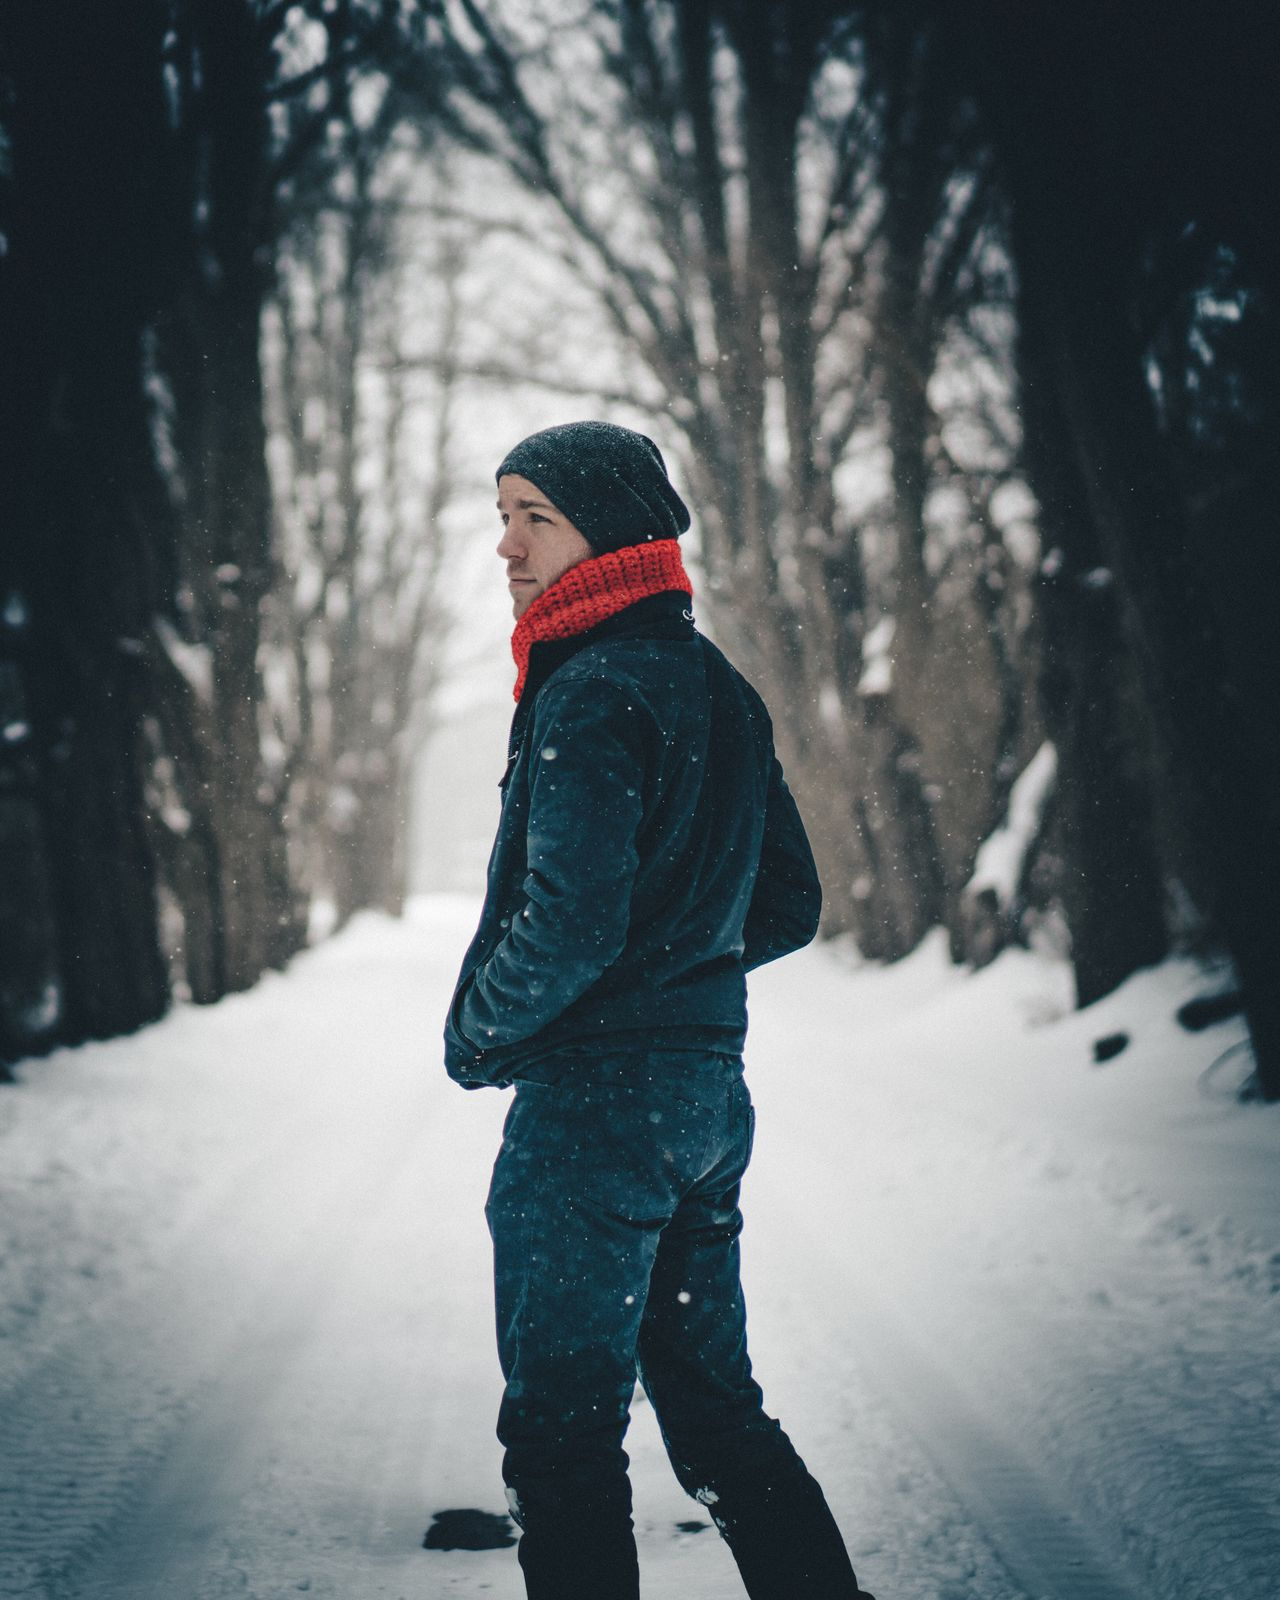 Winter Snow Cold Temperature Warm Clothing Weather One Person Real People Knit Hat Walking Snowing Rear View Nature Tree Day Forest Full Length Childhood Outdoors Beauty In Nature People portrait Winter Portrait Travel Explore Wander